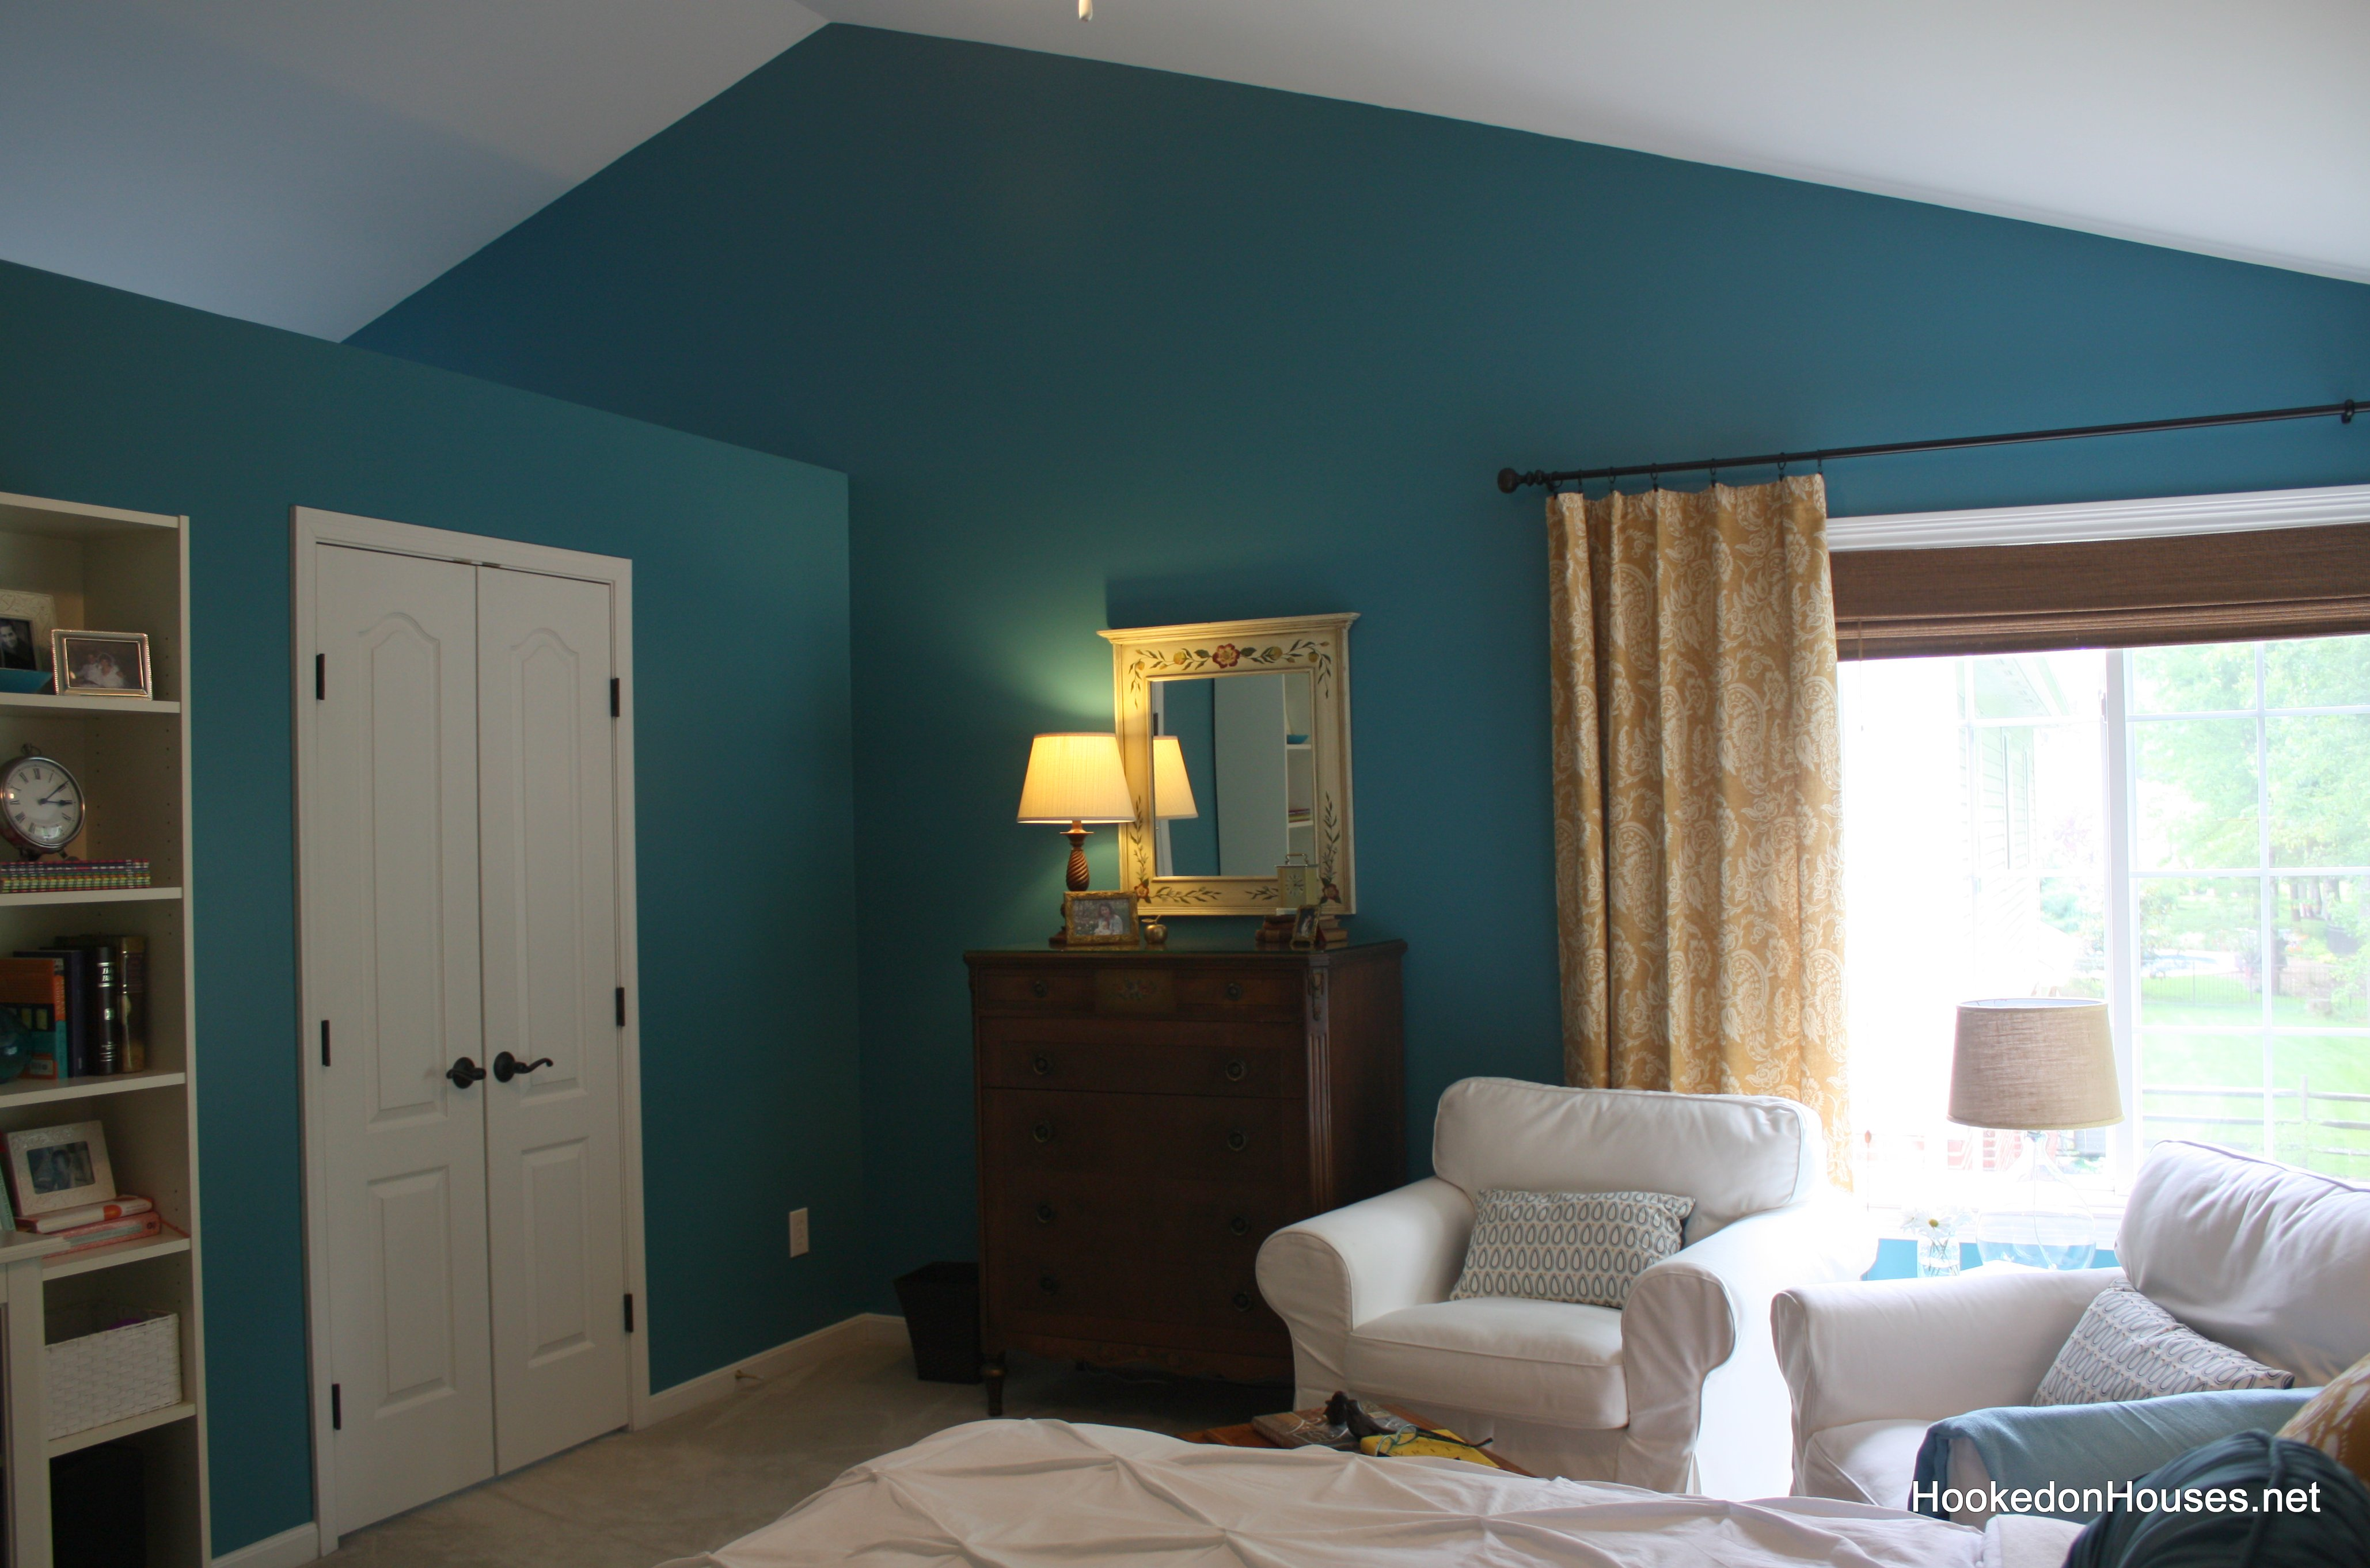 Master Bedroom Makeover After: Master Bedroom After Makeover 4